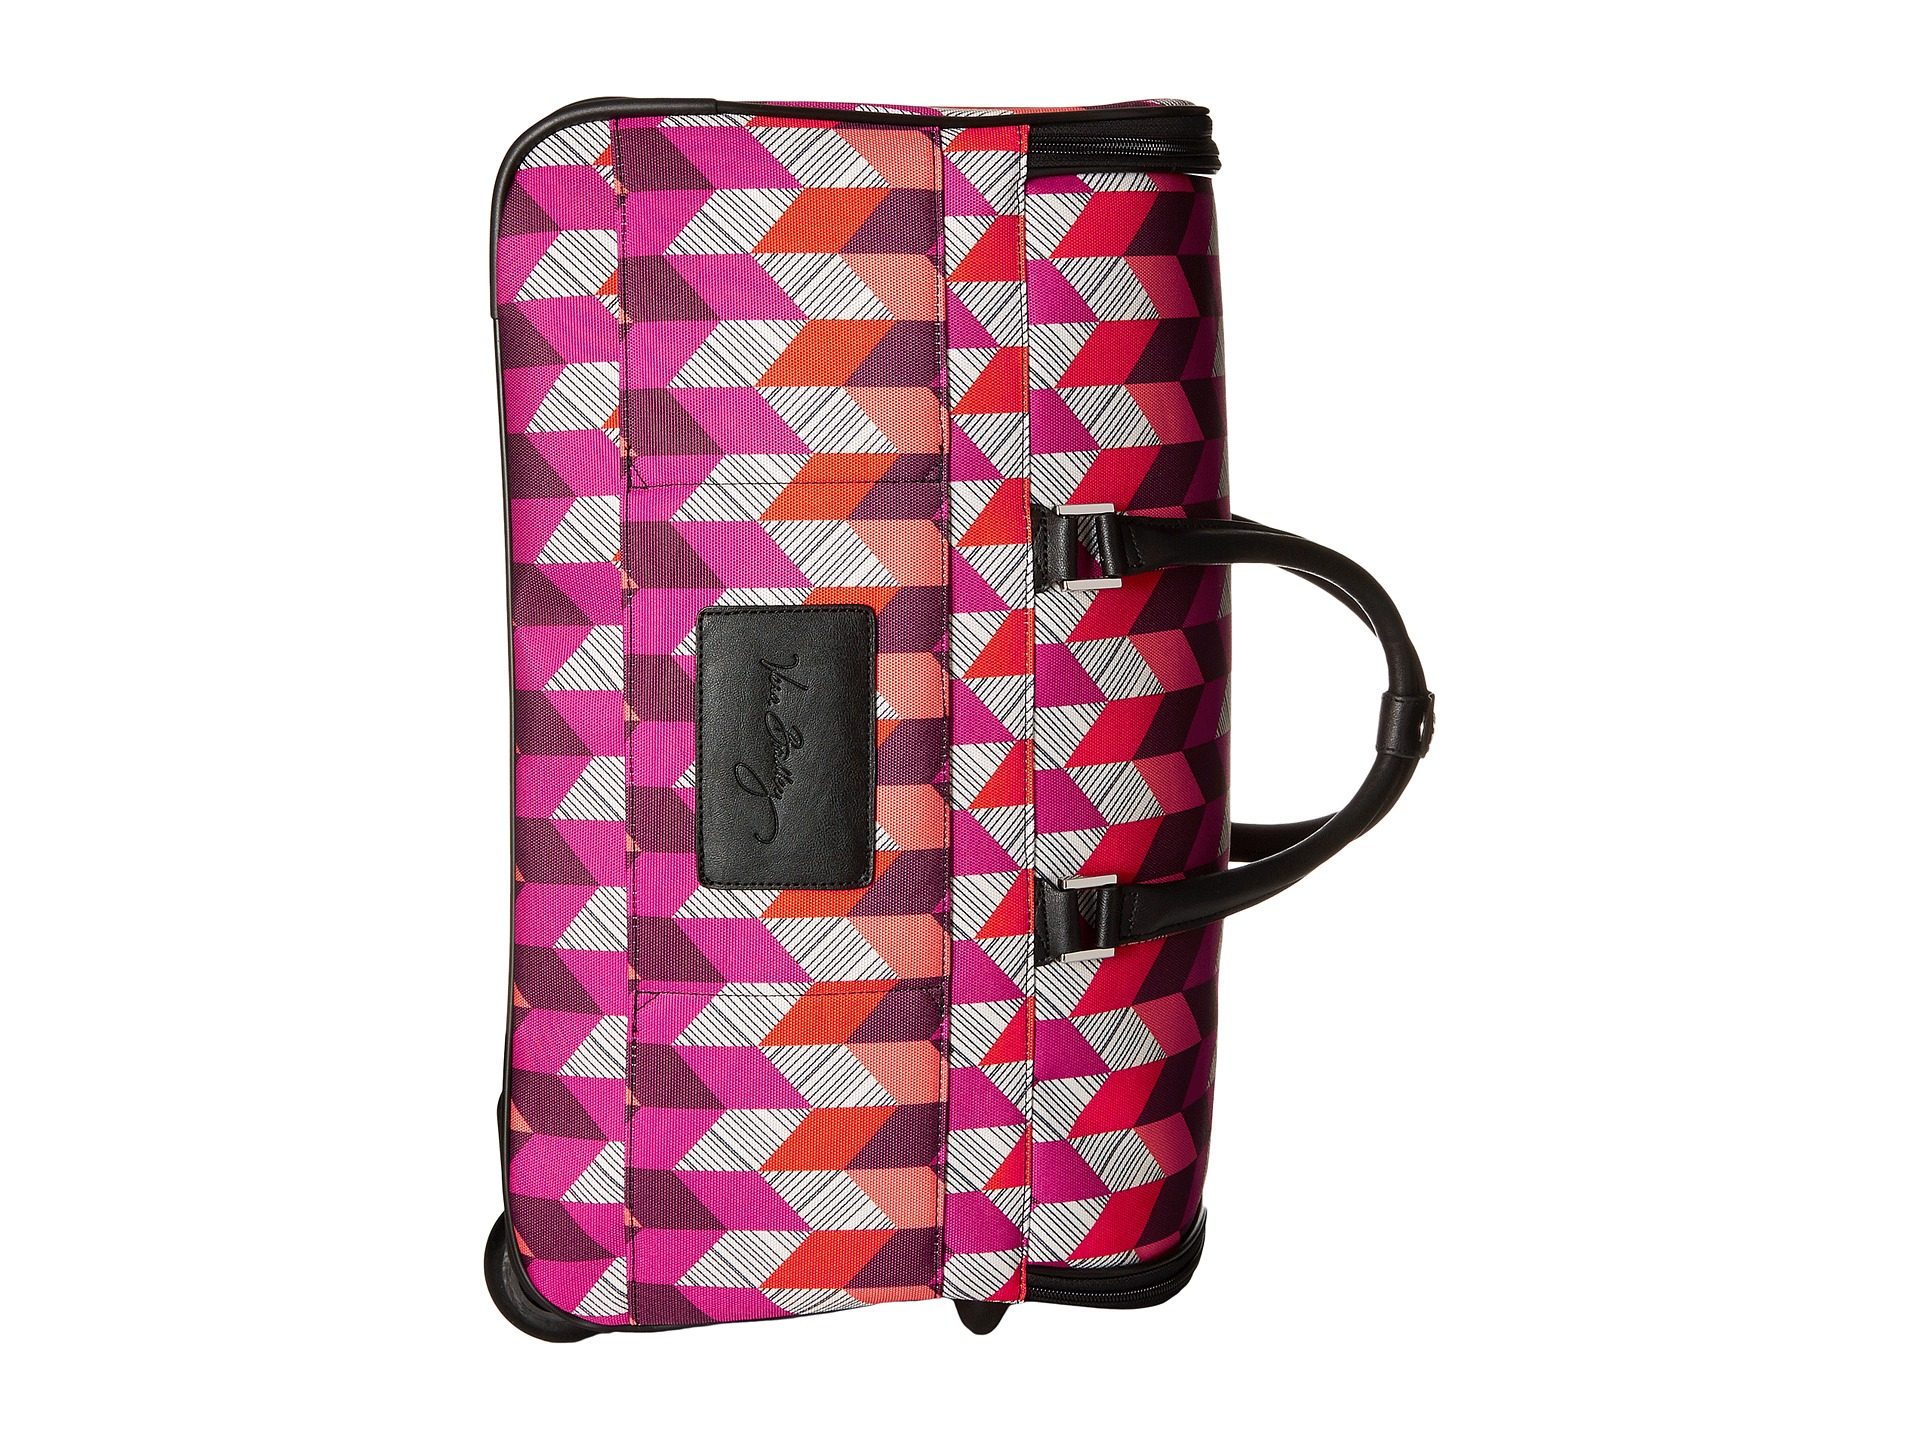 Get the best deals on vera bradley handbags sale and save up to 70% off at Poshmark now! Whatever you're shopping for, we've got it.